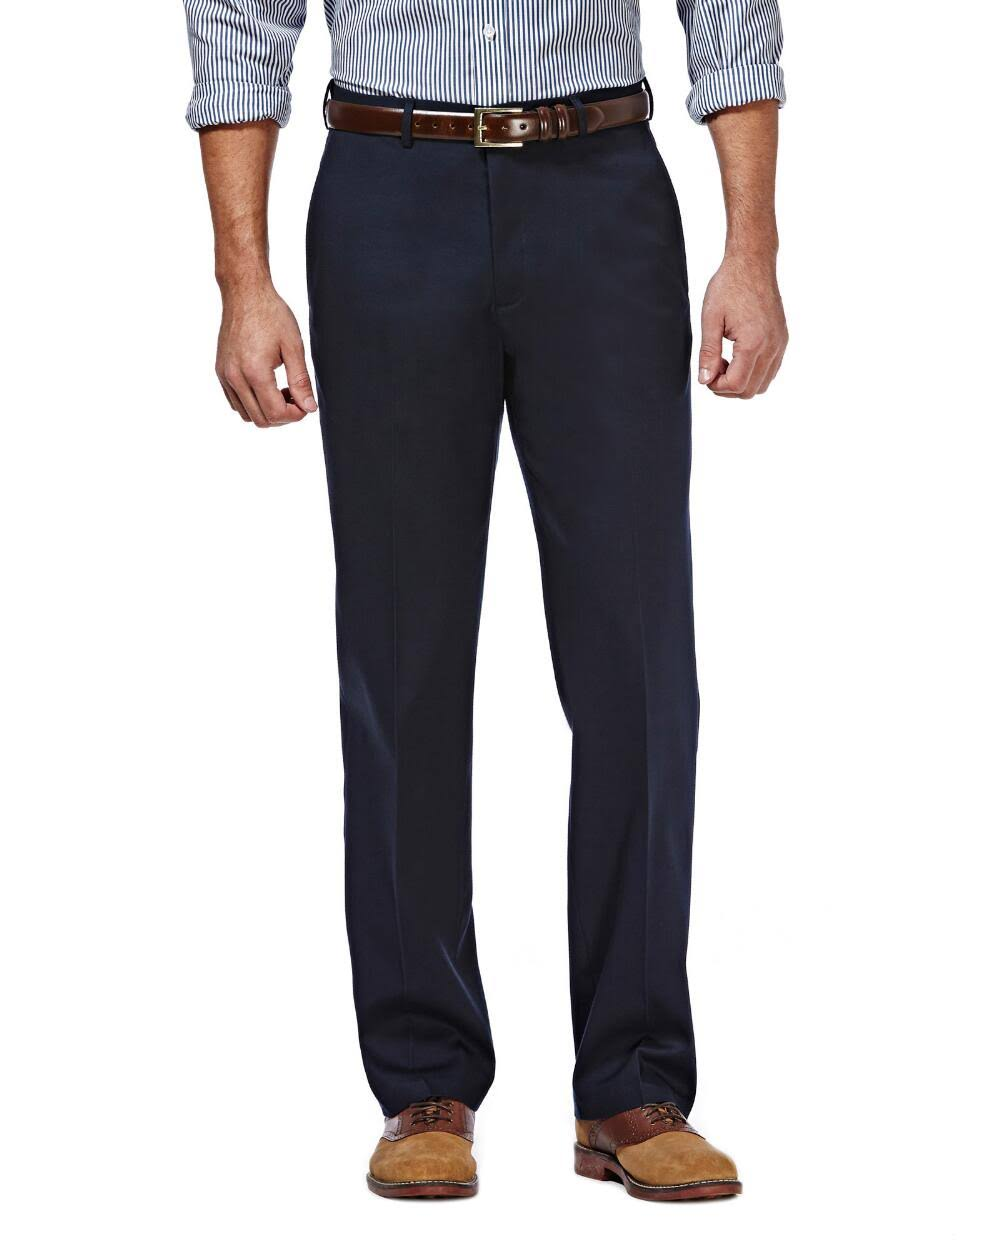 Haggar Men's Premium No Iron Classic Fit Pants